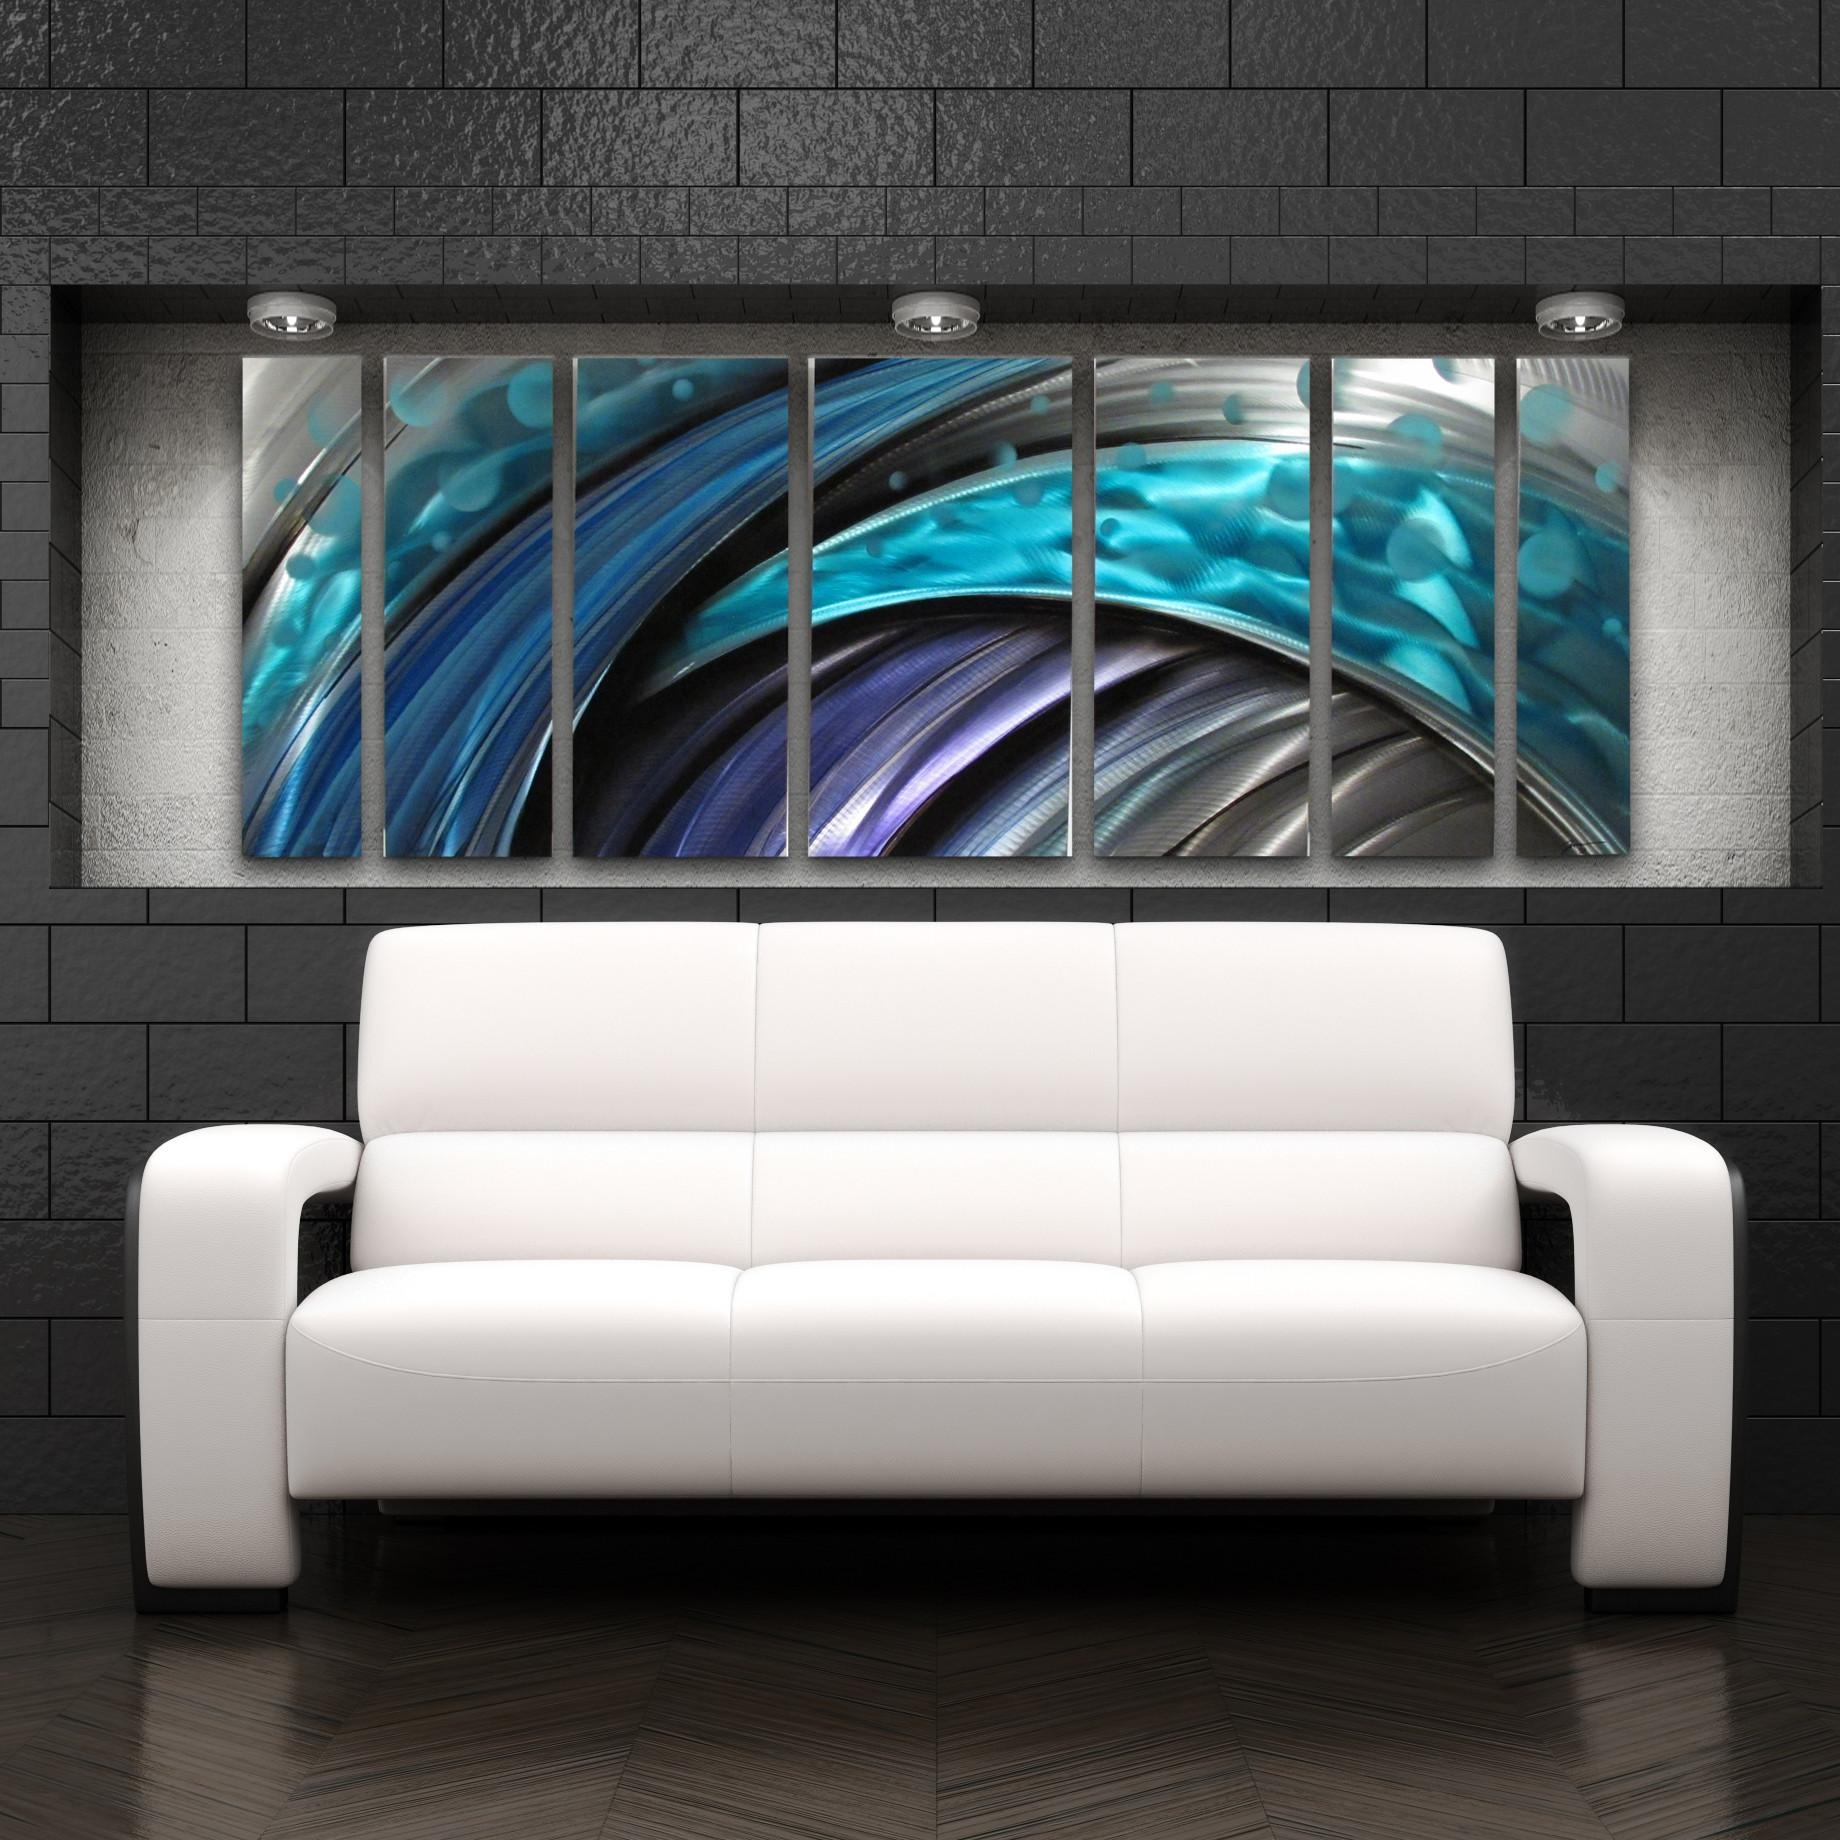 Facts That Nobody Told You About Contemporary Metal Wall Art Within Contemporary Metal Wall Art Sculpture (Image 4 of 20)